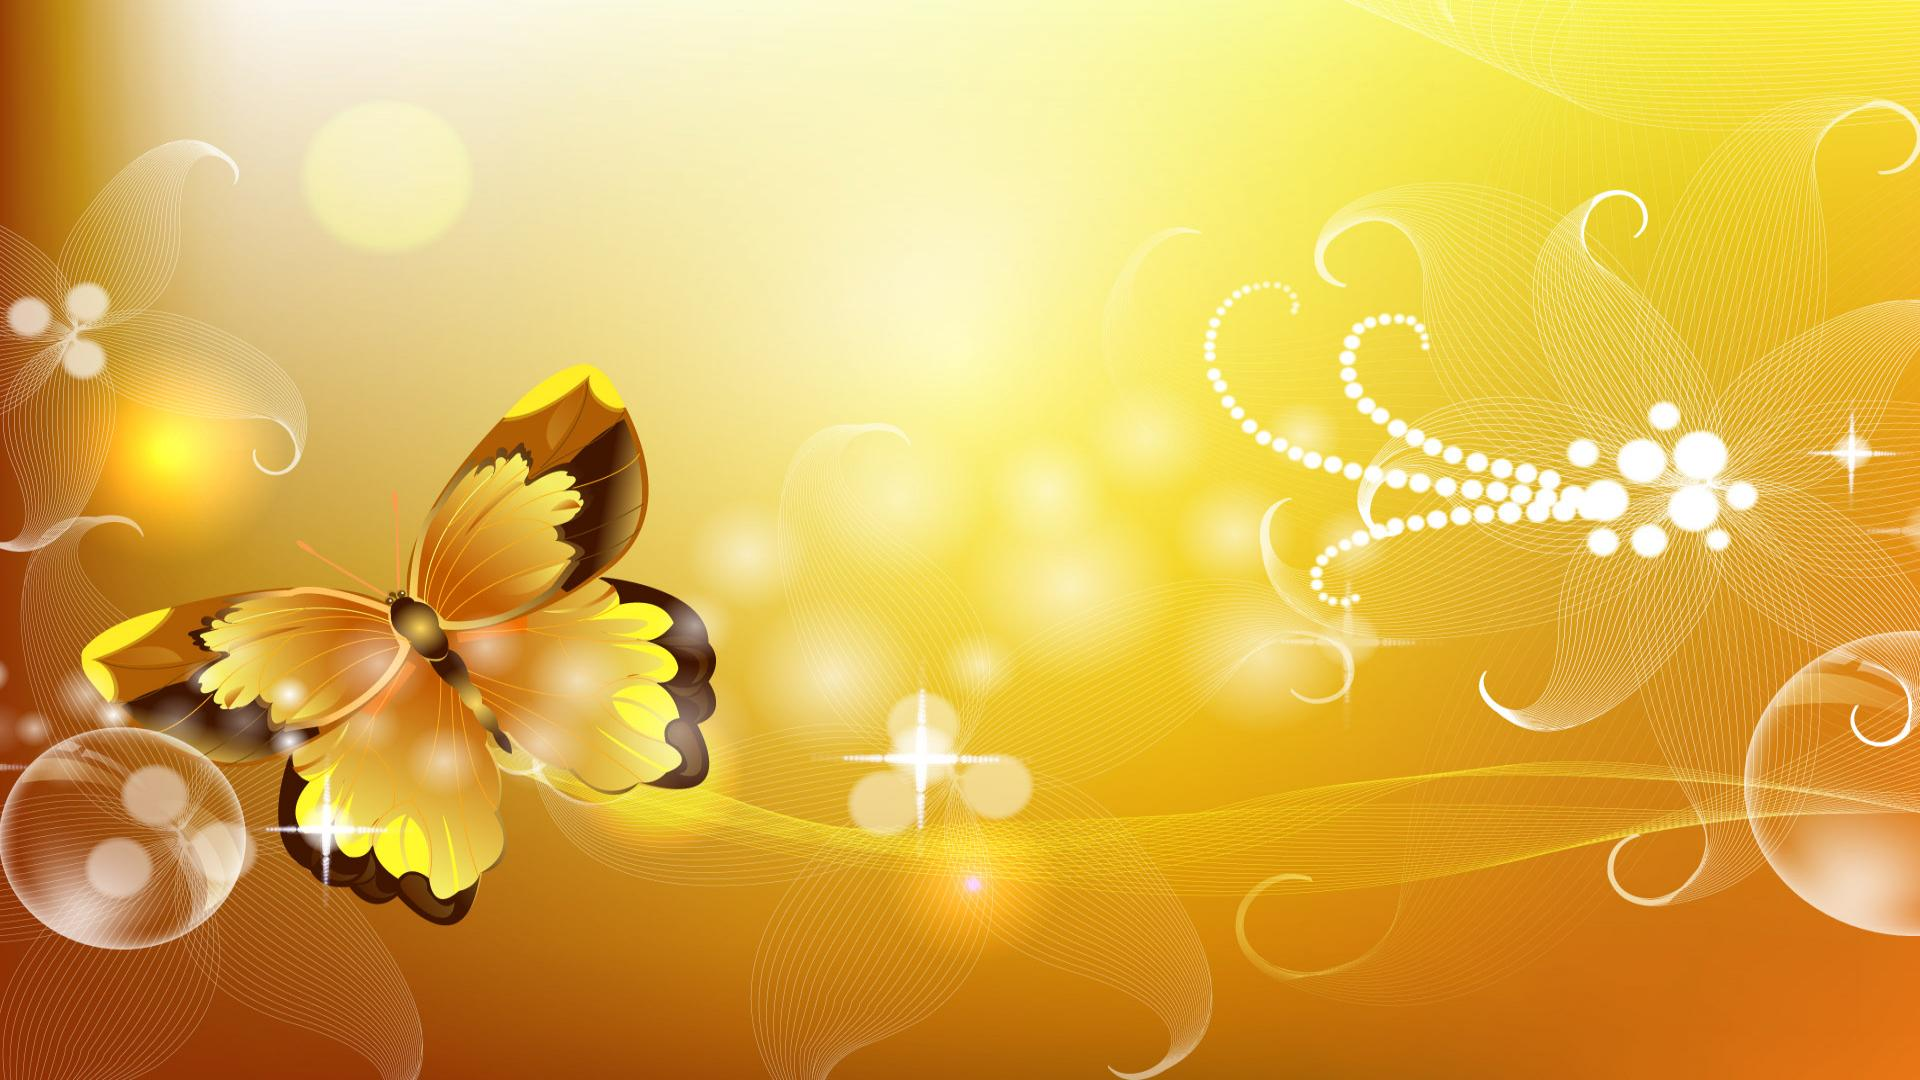 48 High Definition Yellow Wallpapers Backgrounds For Free Download